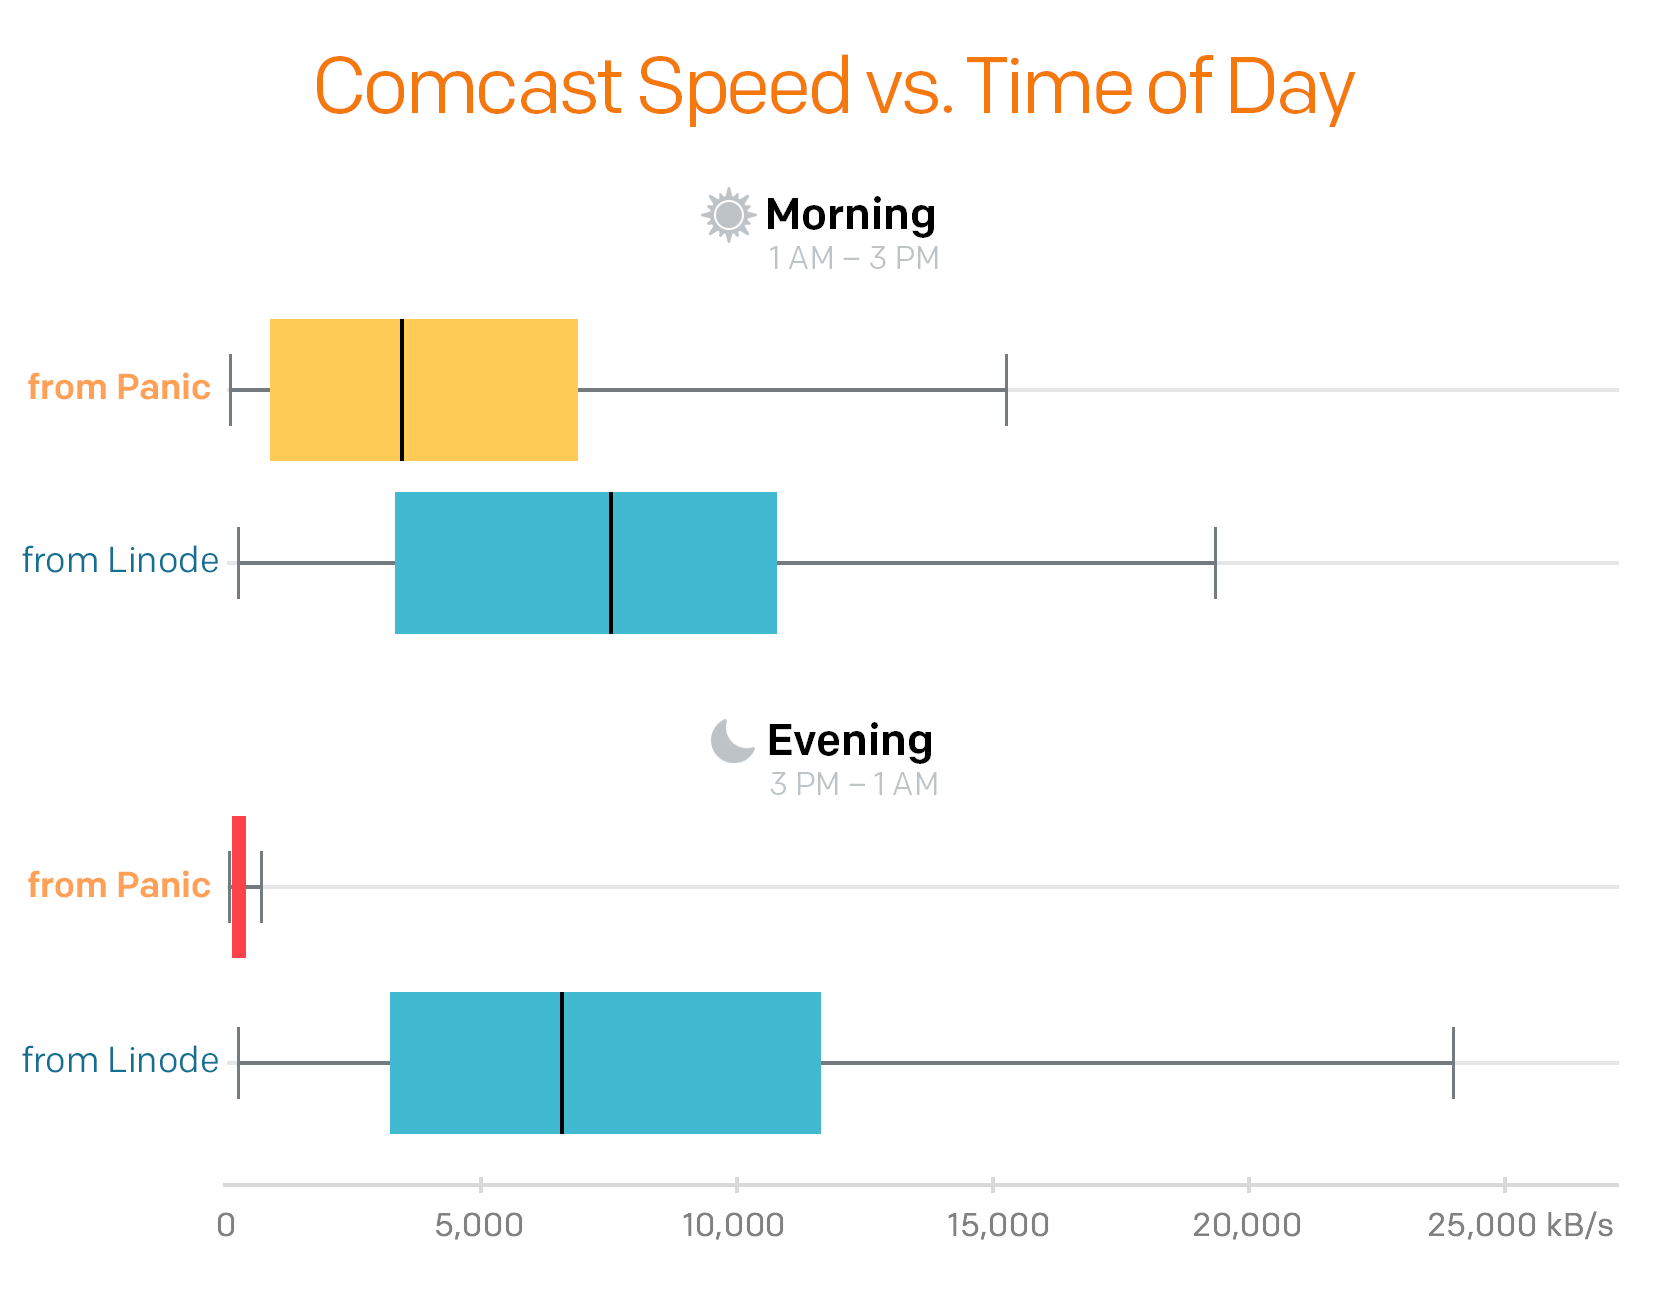 Graph of Comcast transfer speeds in the morning versus the evening